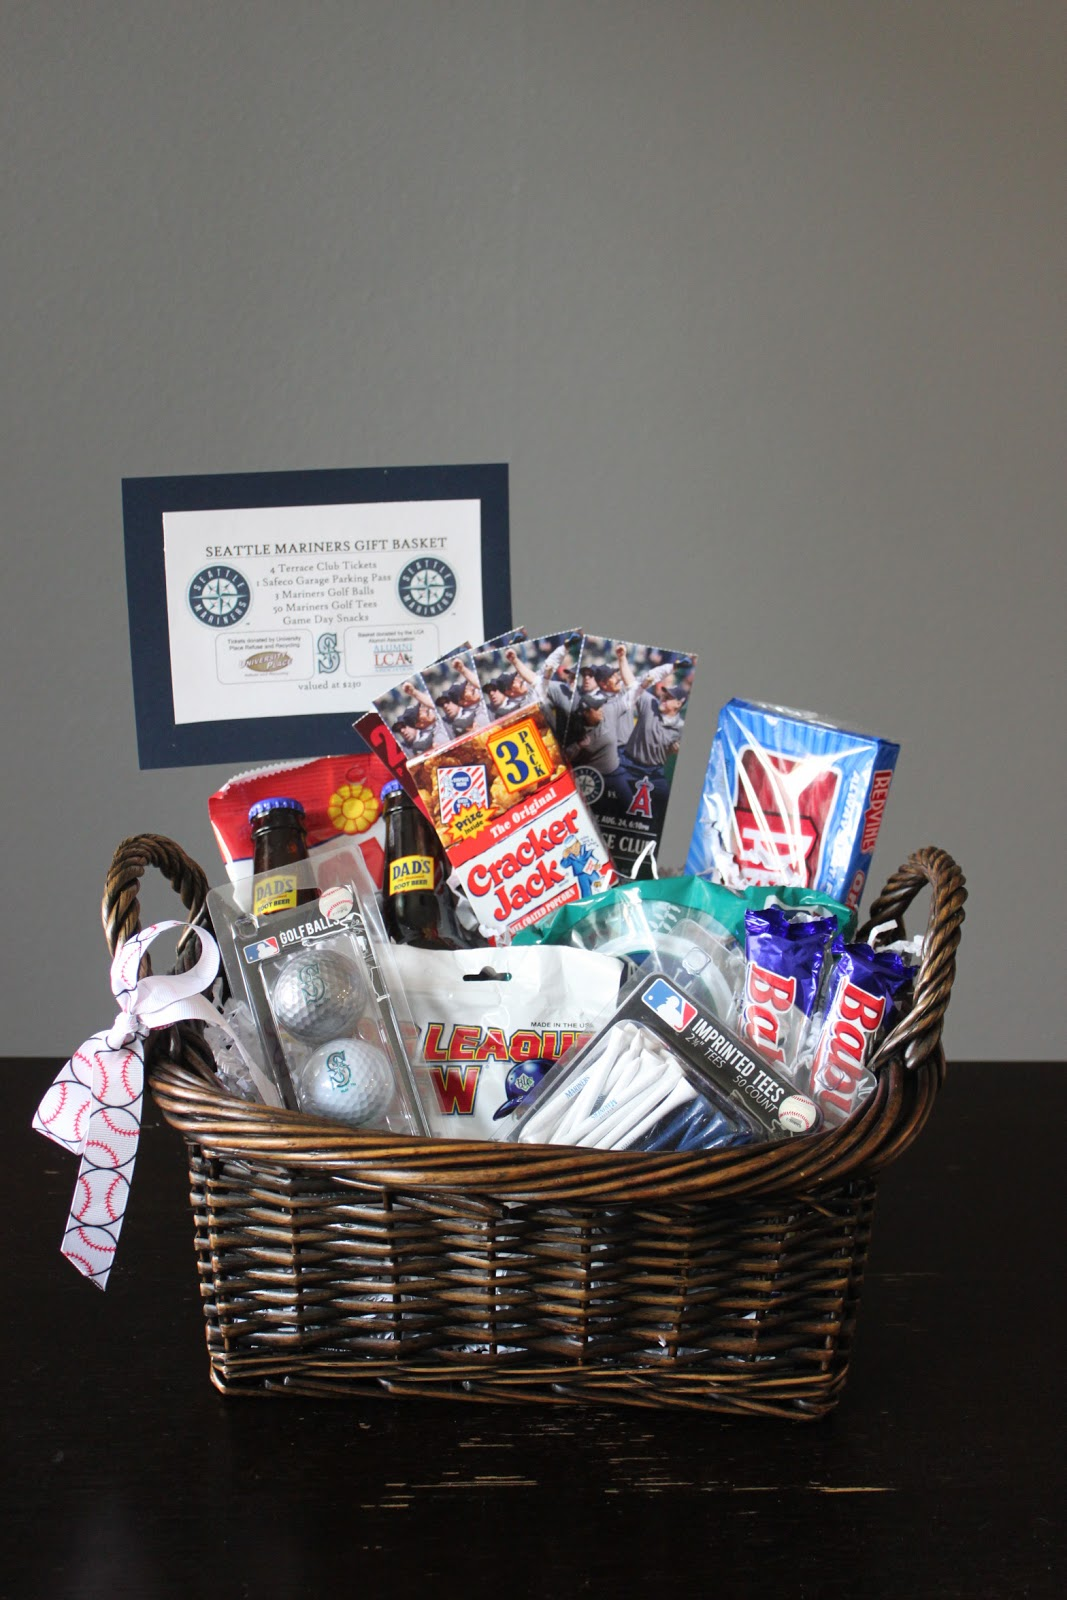 Easter Baskets For Adults My Dirty Aprons Seattle Mariners Gift Basket